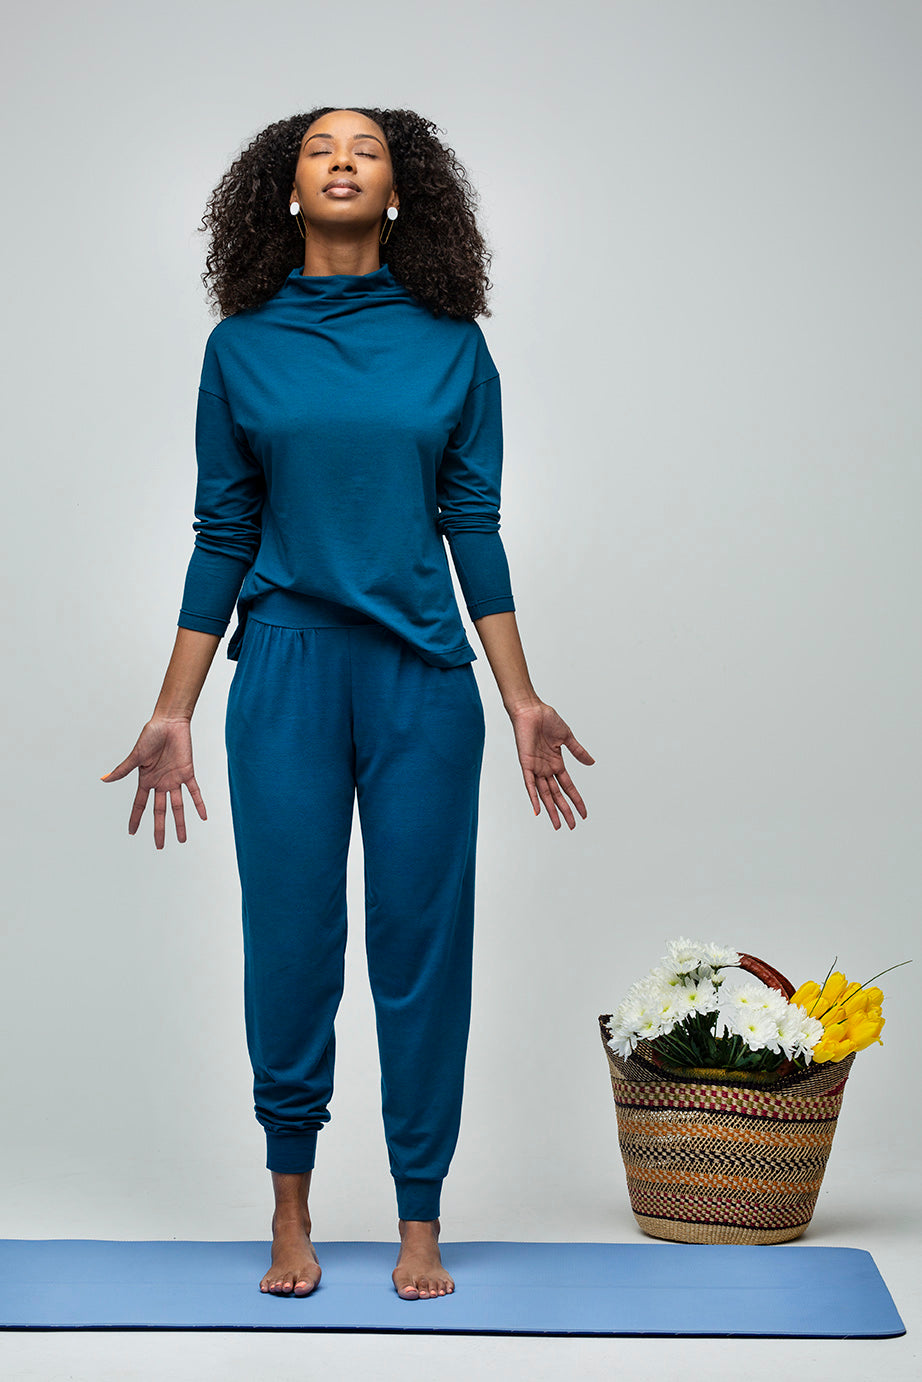 24/7 Pants in Peacock and Effortless Long-sleeve Top in Peacock